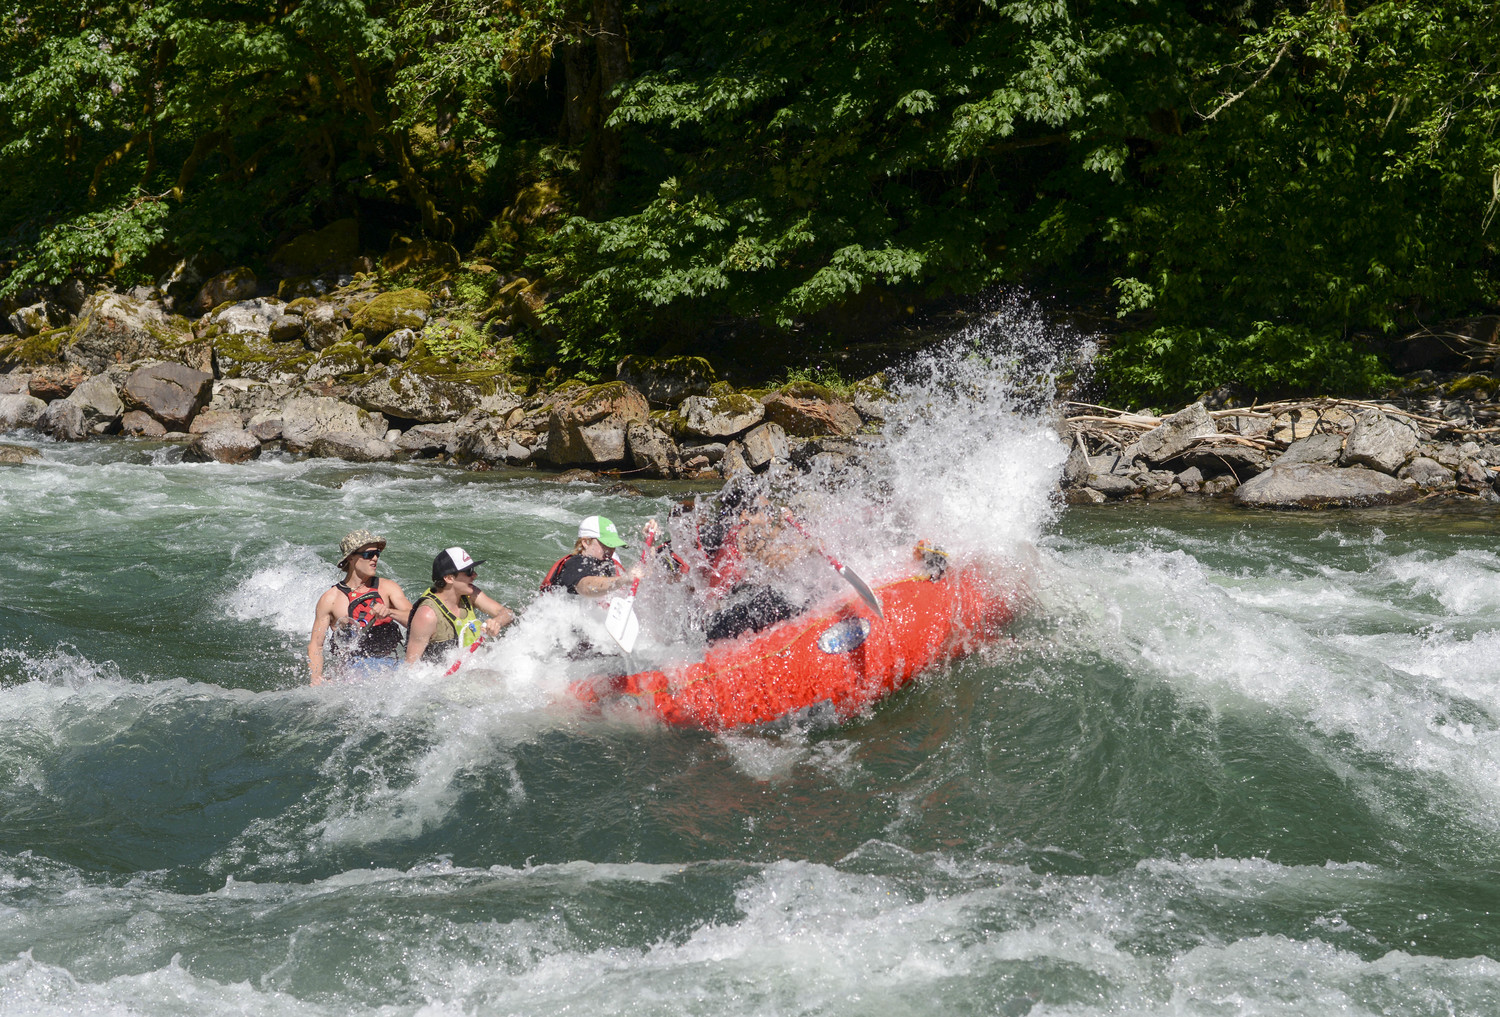 facf5db6dec2 The Wenatchee River is a Class 3 Whitewater River near Leavenworth  Washington. We offer guided river rafting trips in the North Cascades on  the Wenatchee ...